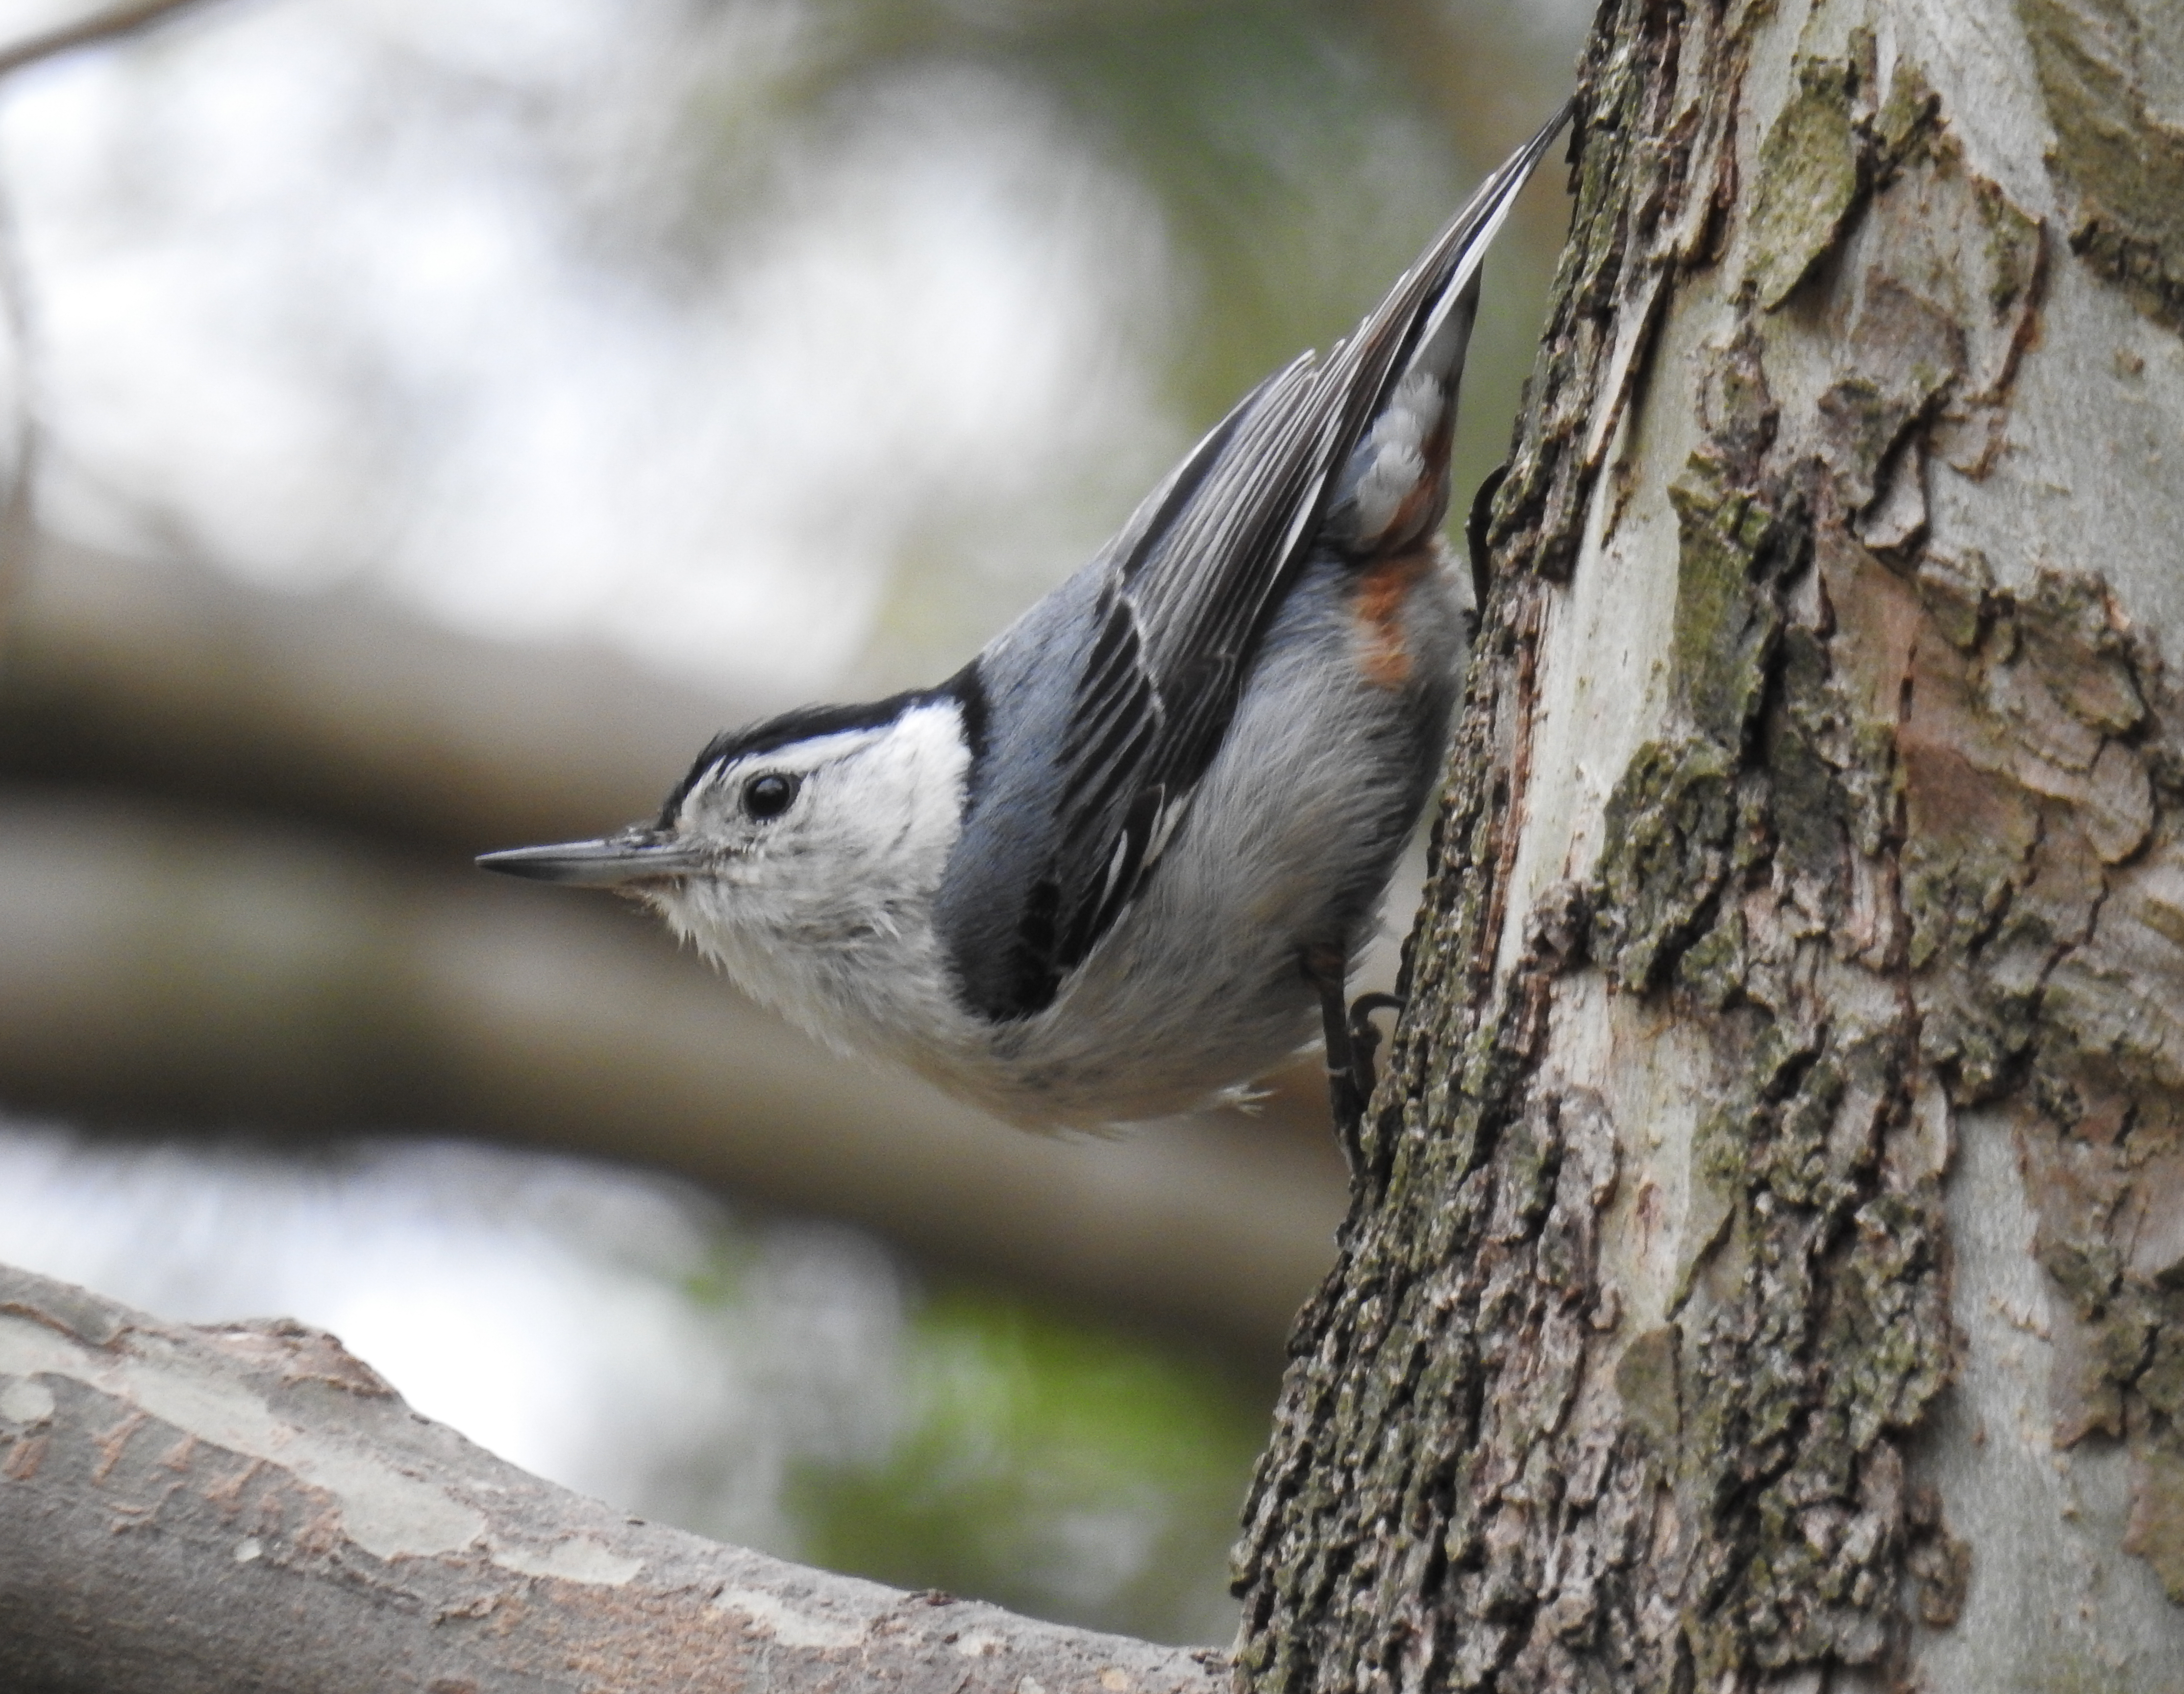 A White-Breasted Nuthatch on the Sycamore Tree